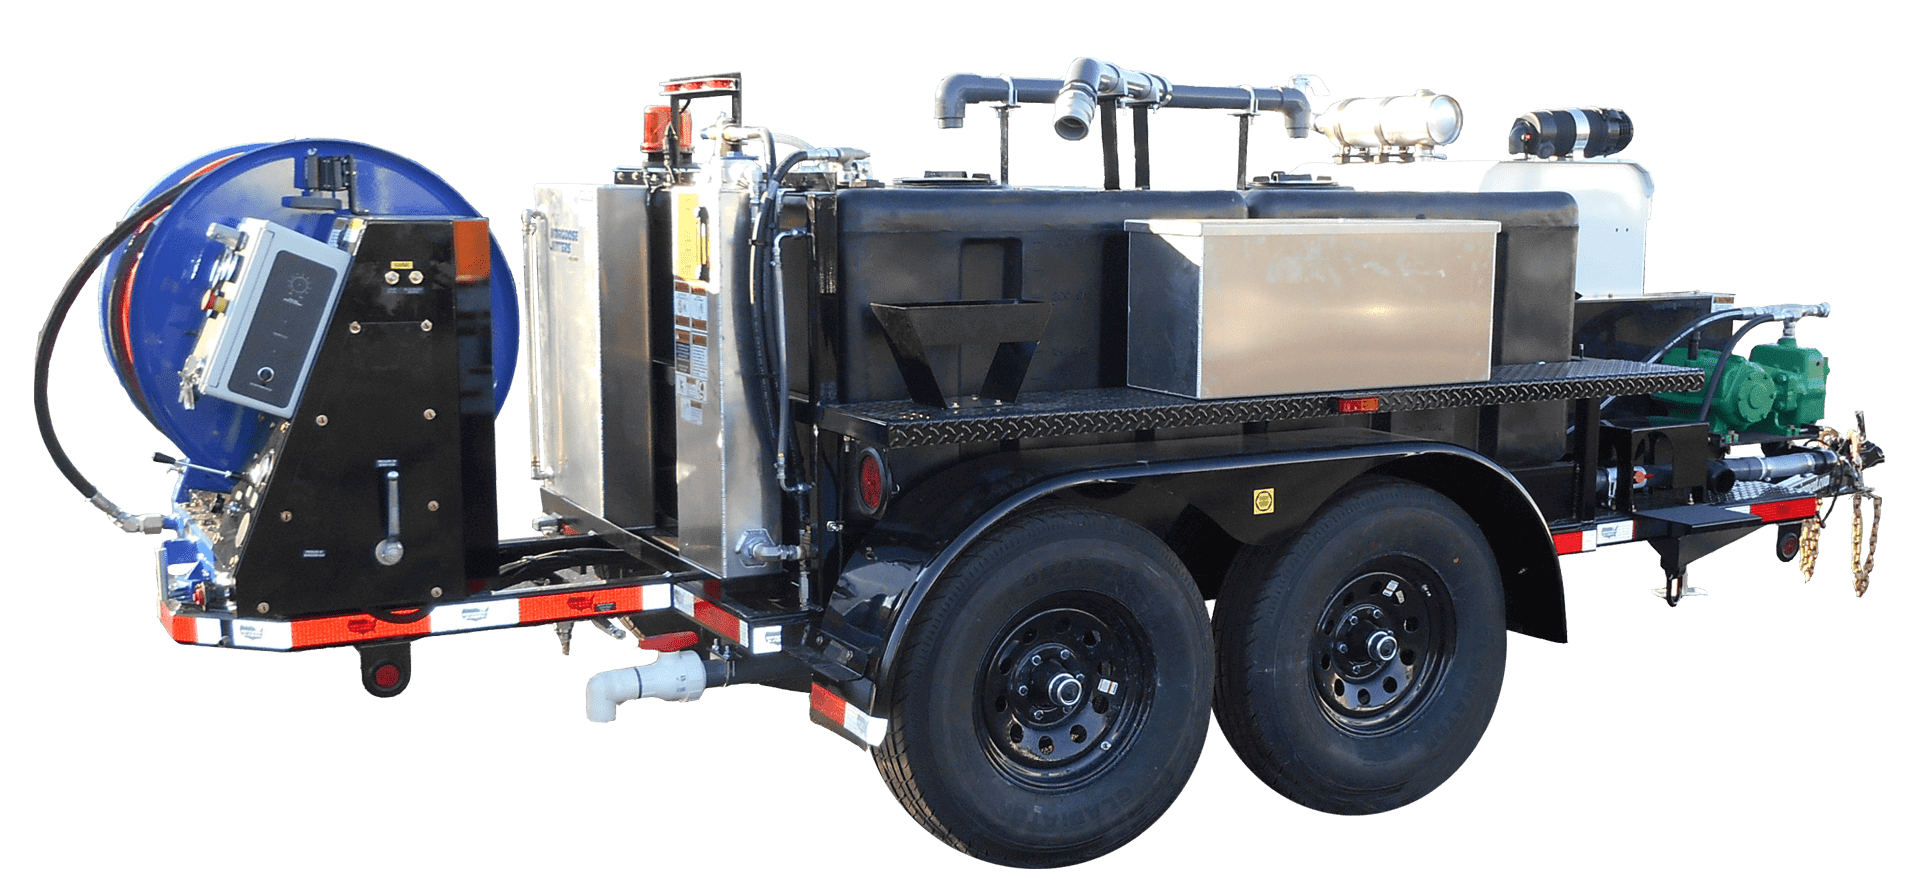 Mongoose Jetters, Model 402XL, Jetter Trailer, jetter